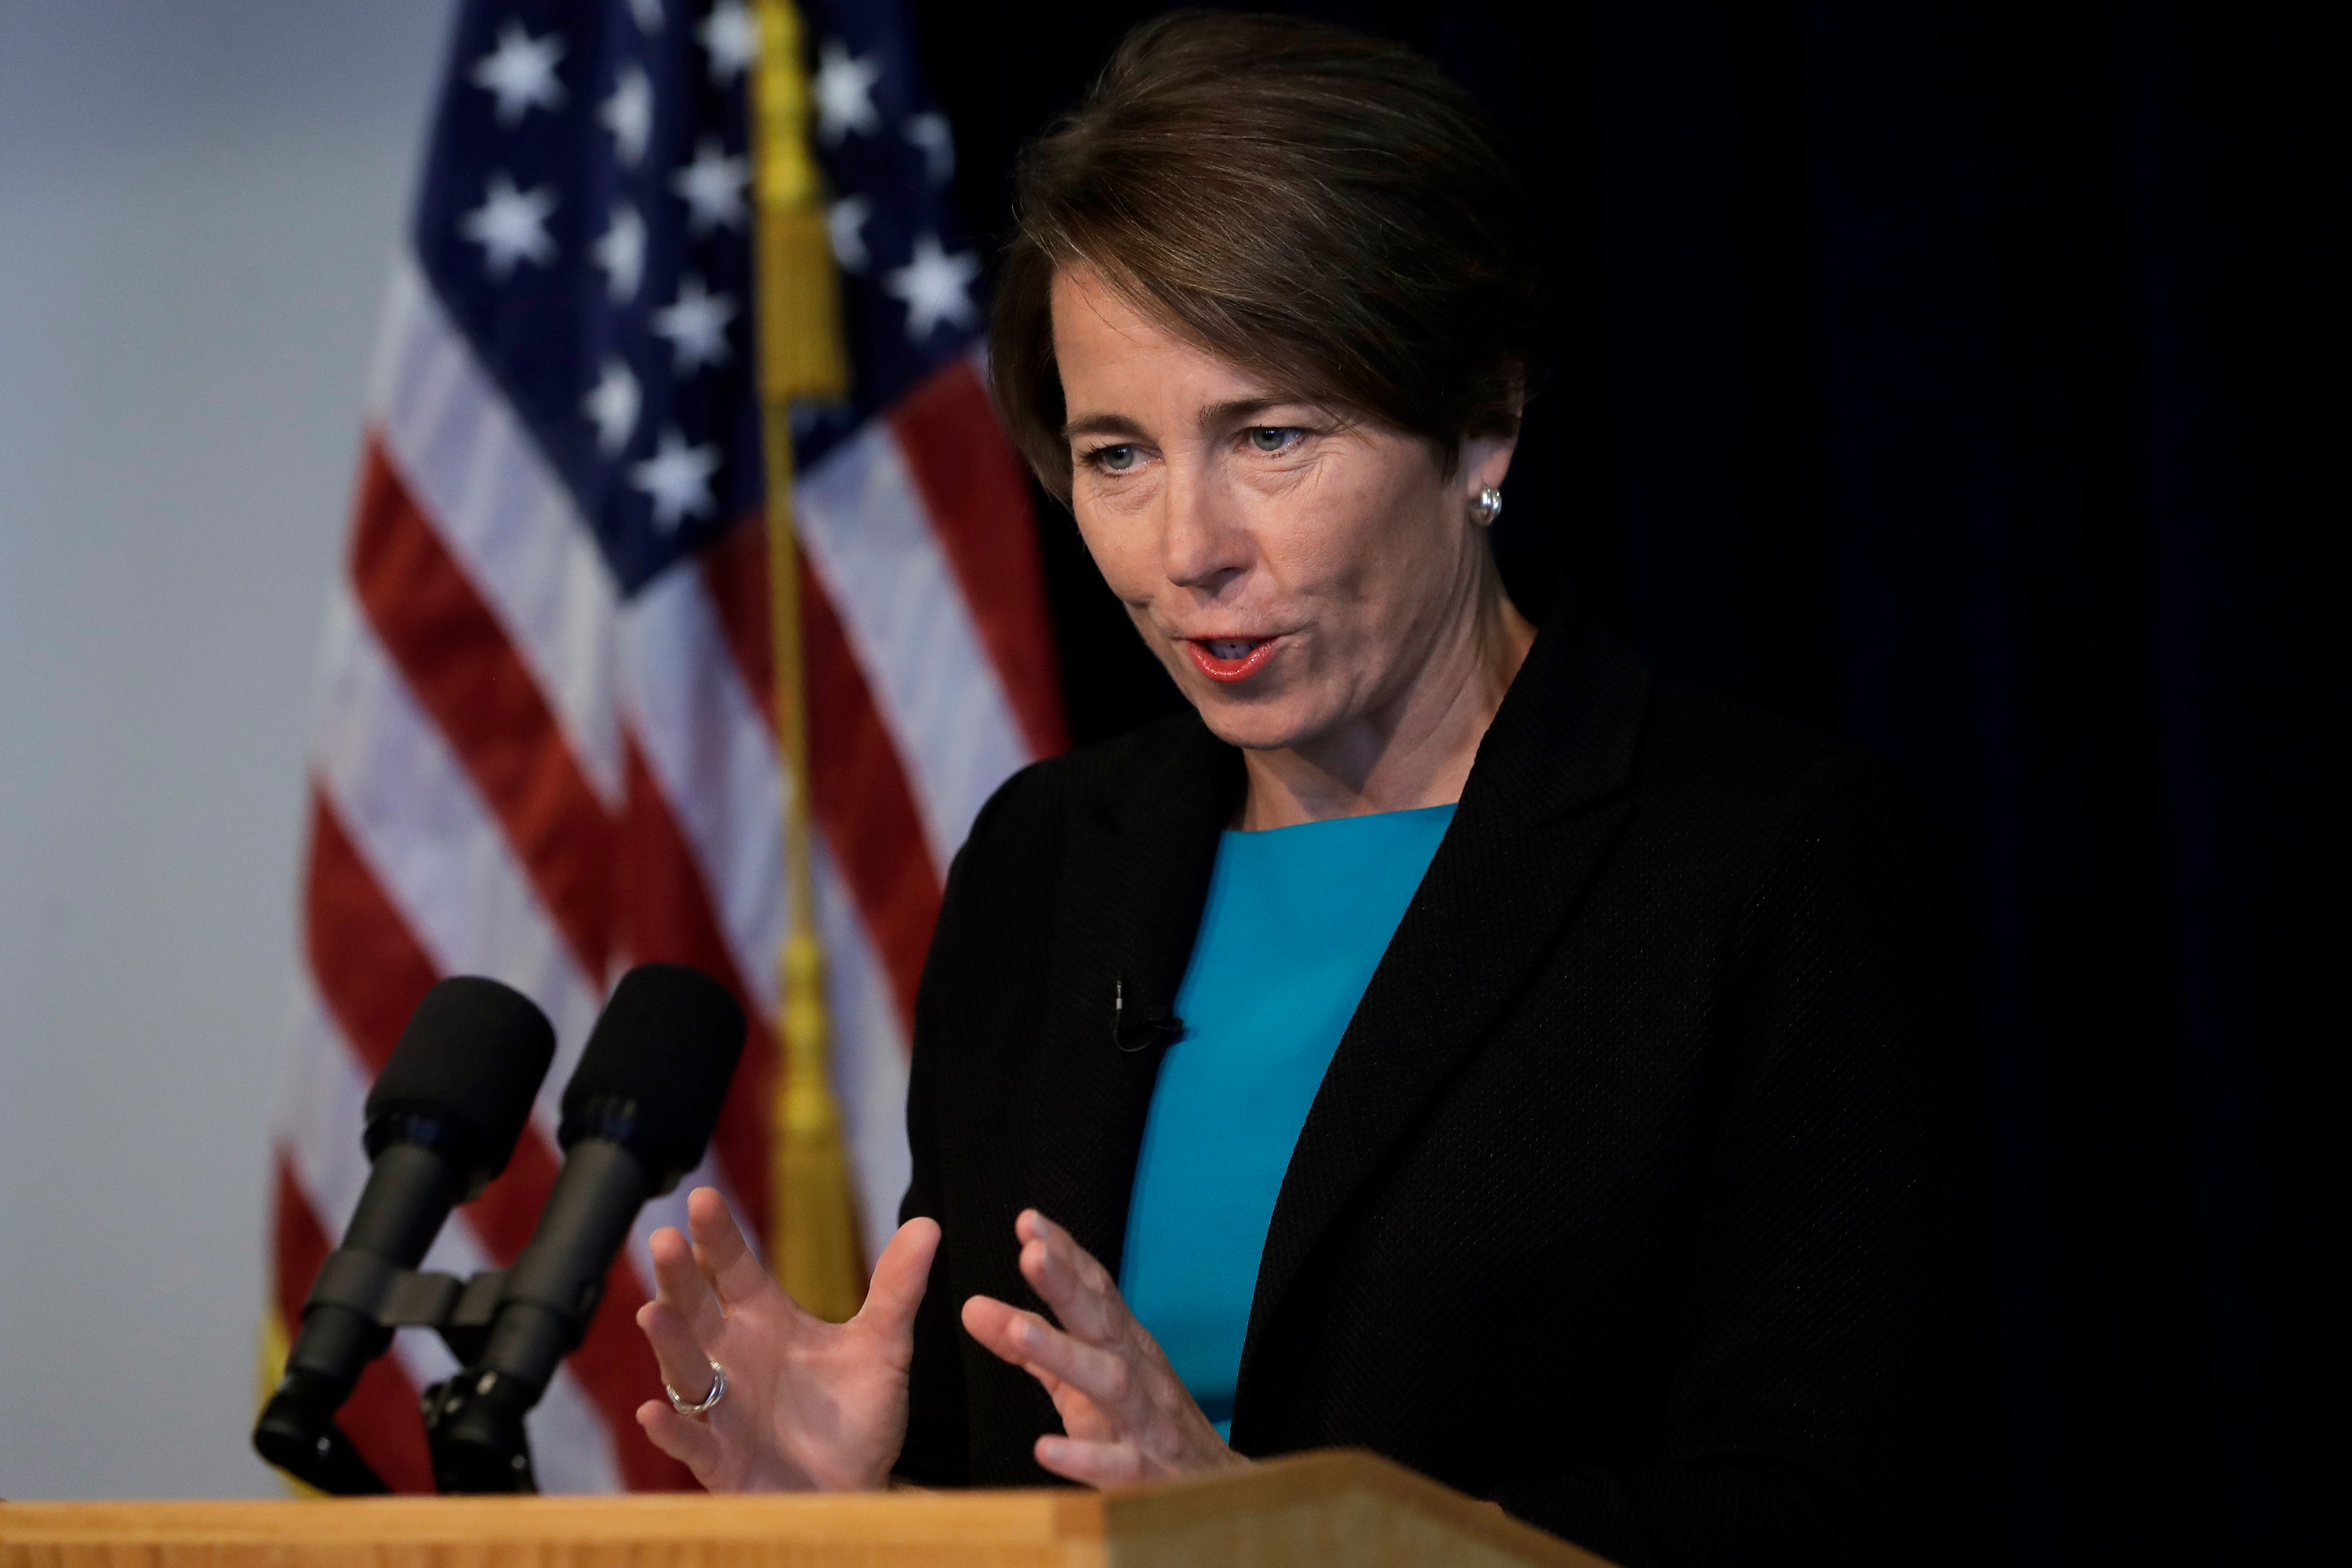 Massachusetts Attorney General Maura Healey speaks during a news conference on September 16, 2019, in Boston.